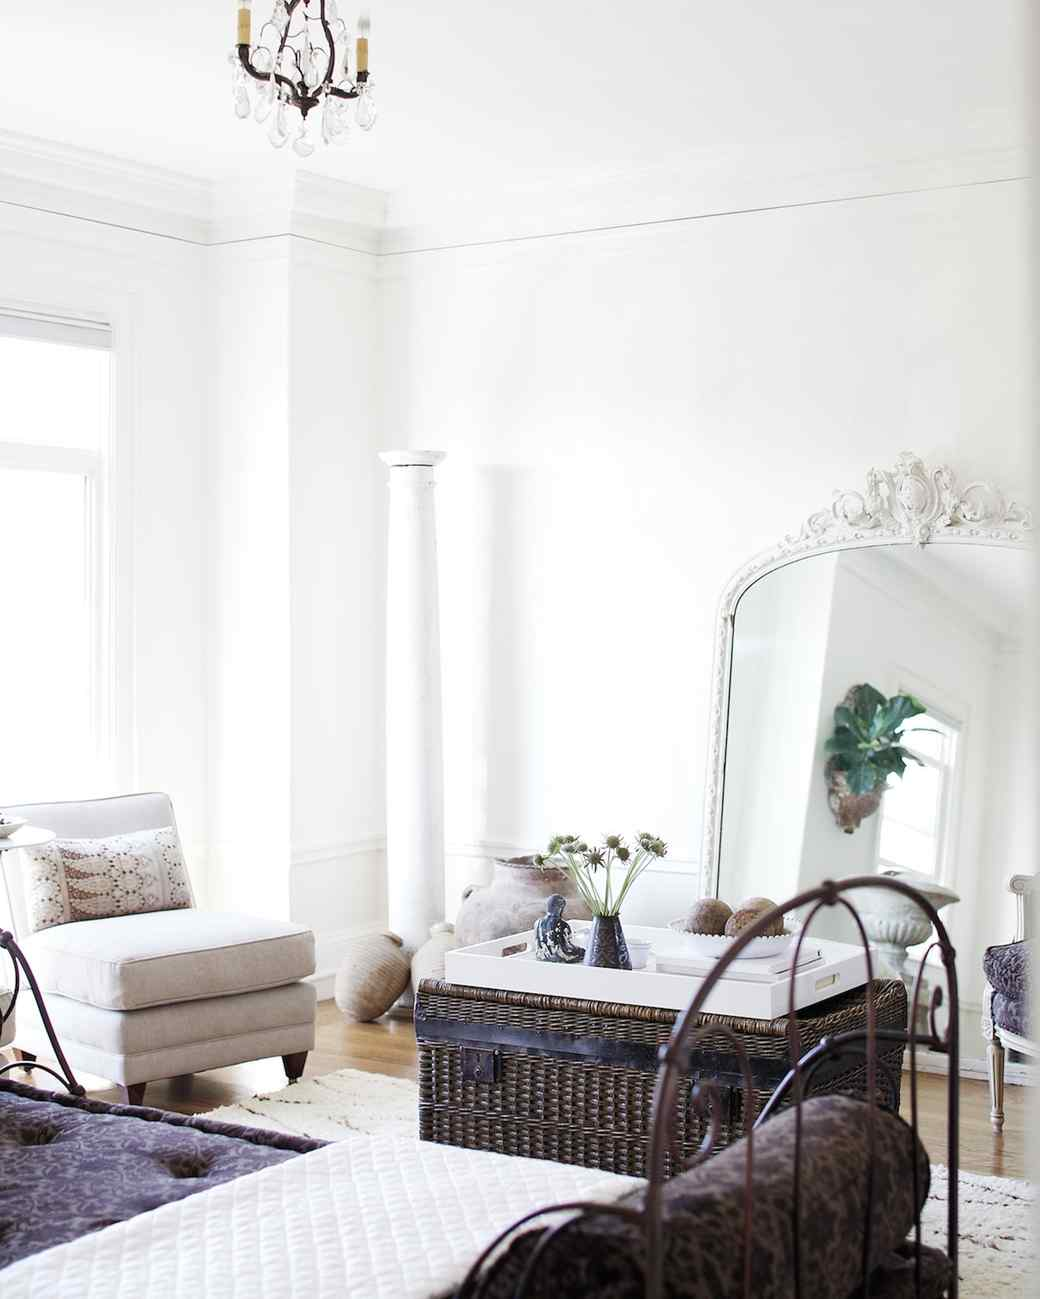 11 Living Room Decorating Ideas Every Homeowner Should Know | Martha ...